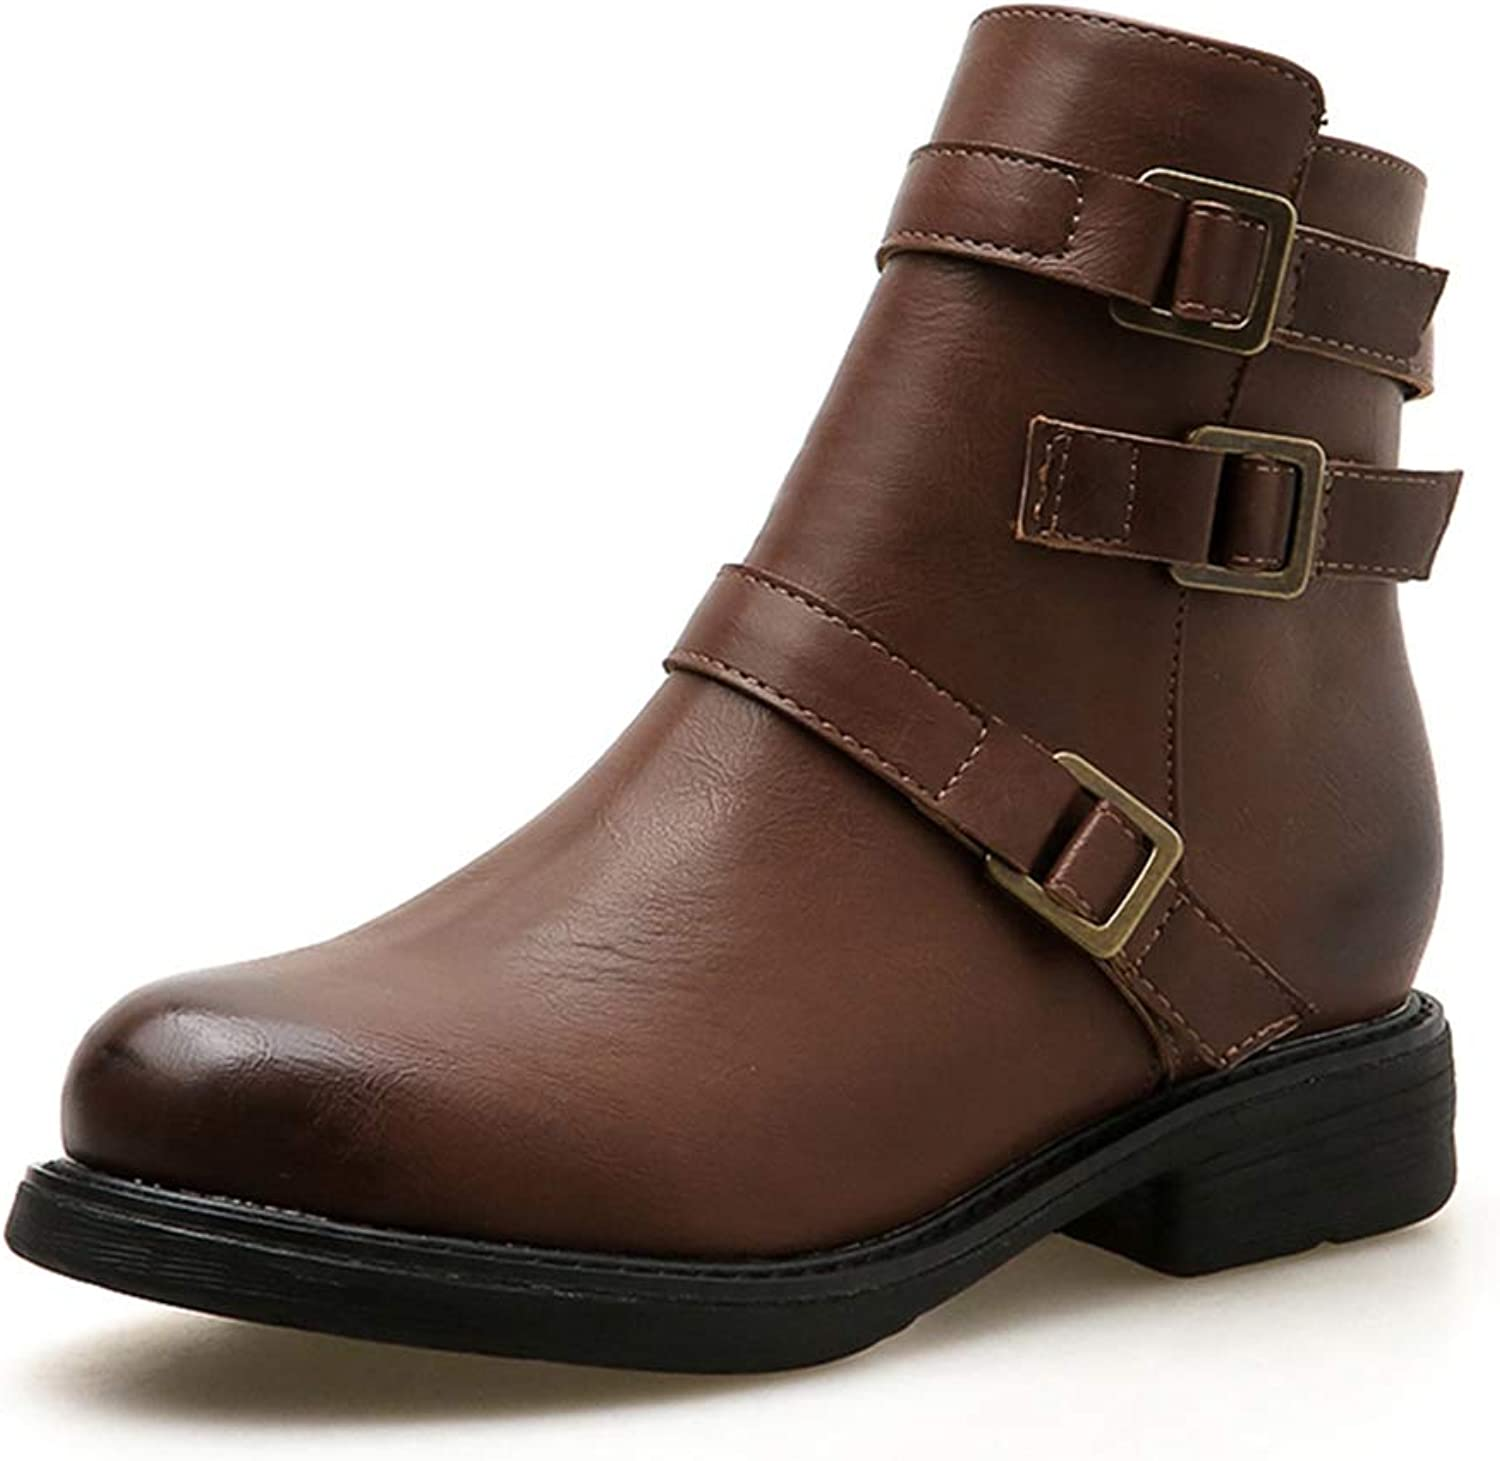 Retro Buckle Strap Ankle Boots Side Zipper Round Toe Square Heel Flats PU Leather Chelsea Booties